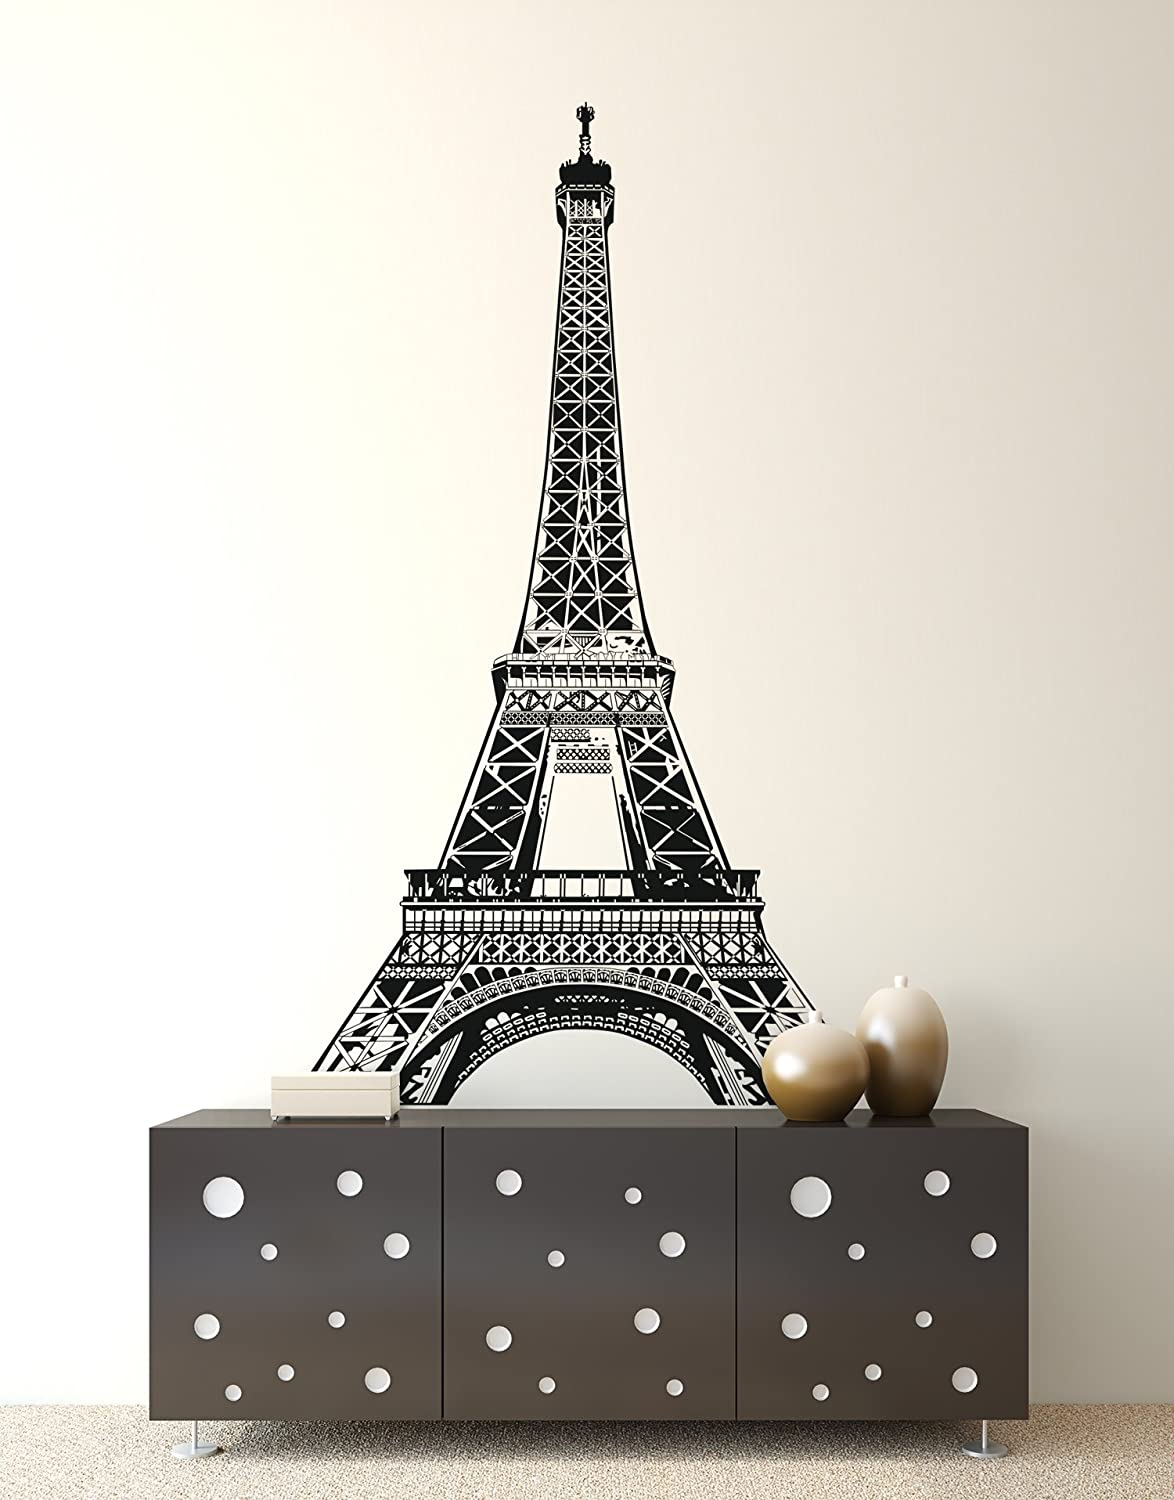 Details about  /Vinyl Wall Decal Travel World Eiffel Tower Statue Of Liberty Stickers g420